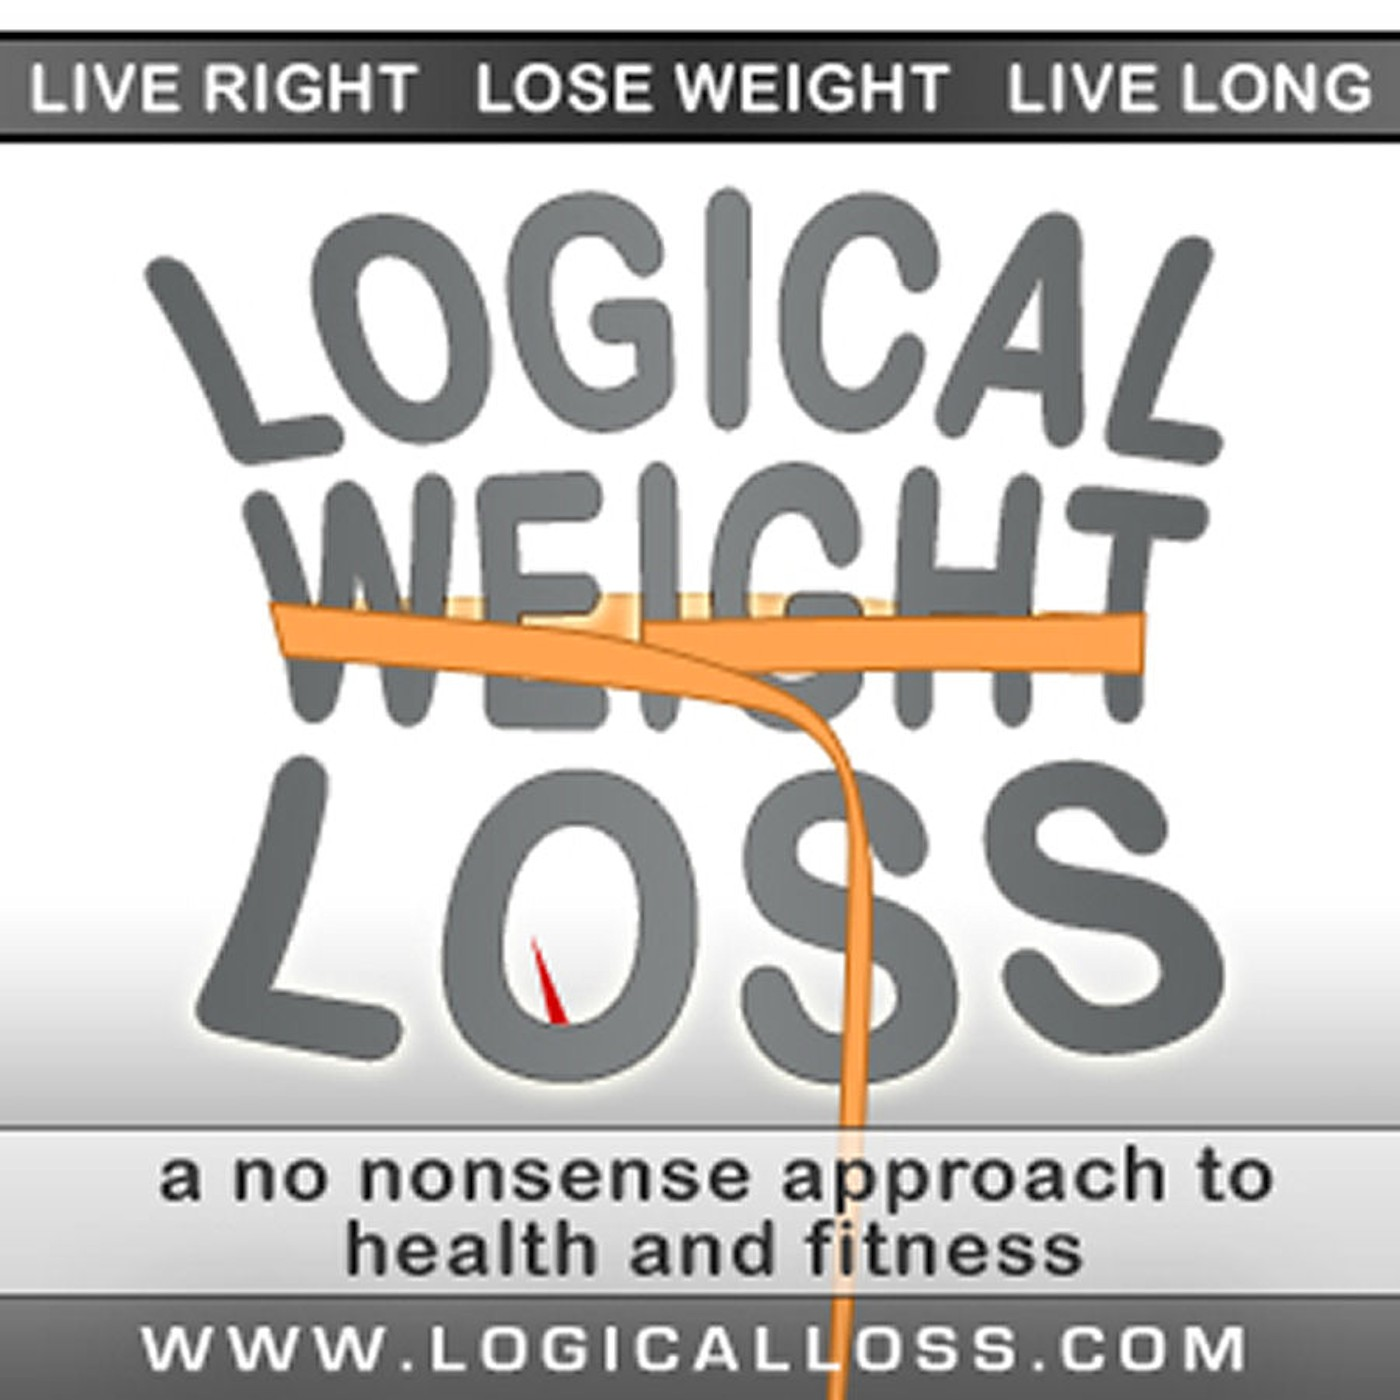 Artwork for Weight Training Benefits & Fighting Food Cravings